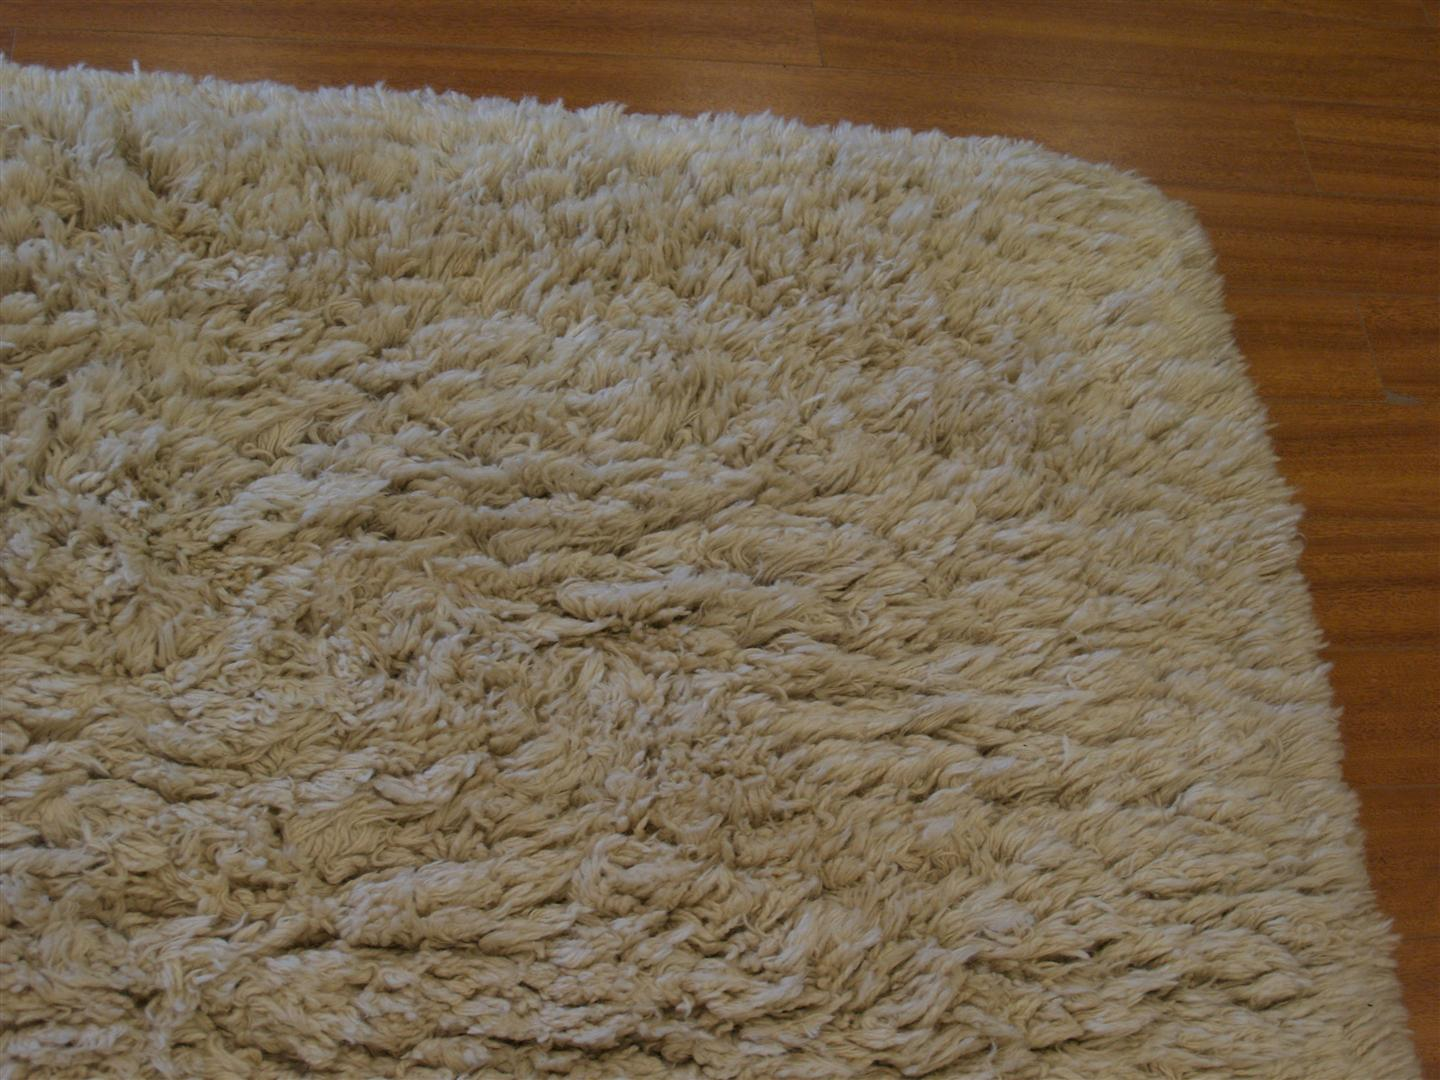 This shag rug looks great now and is the original ivory color. The entire  pile has been cleaned and it is now ready to be placed down in the